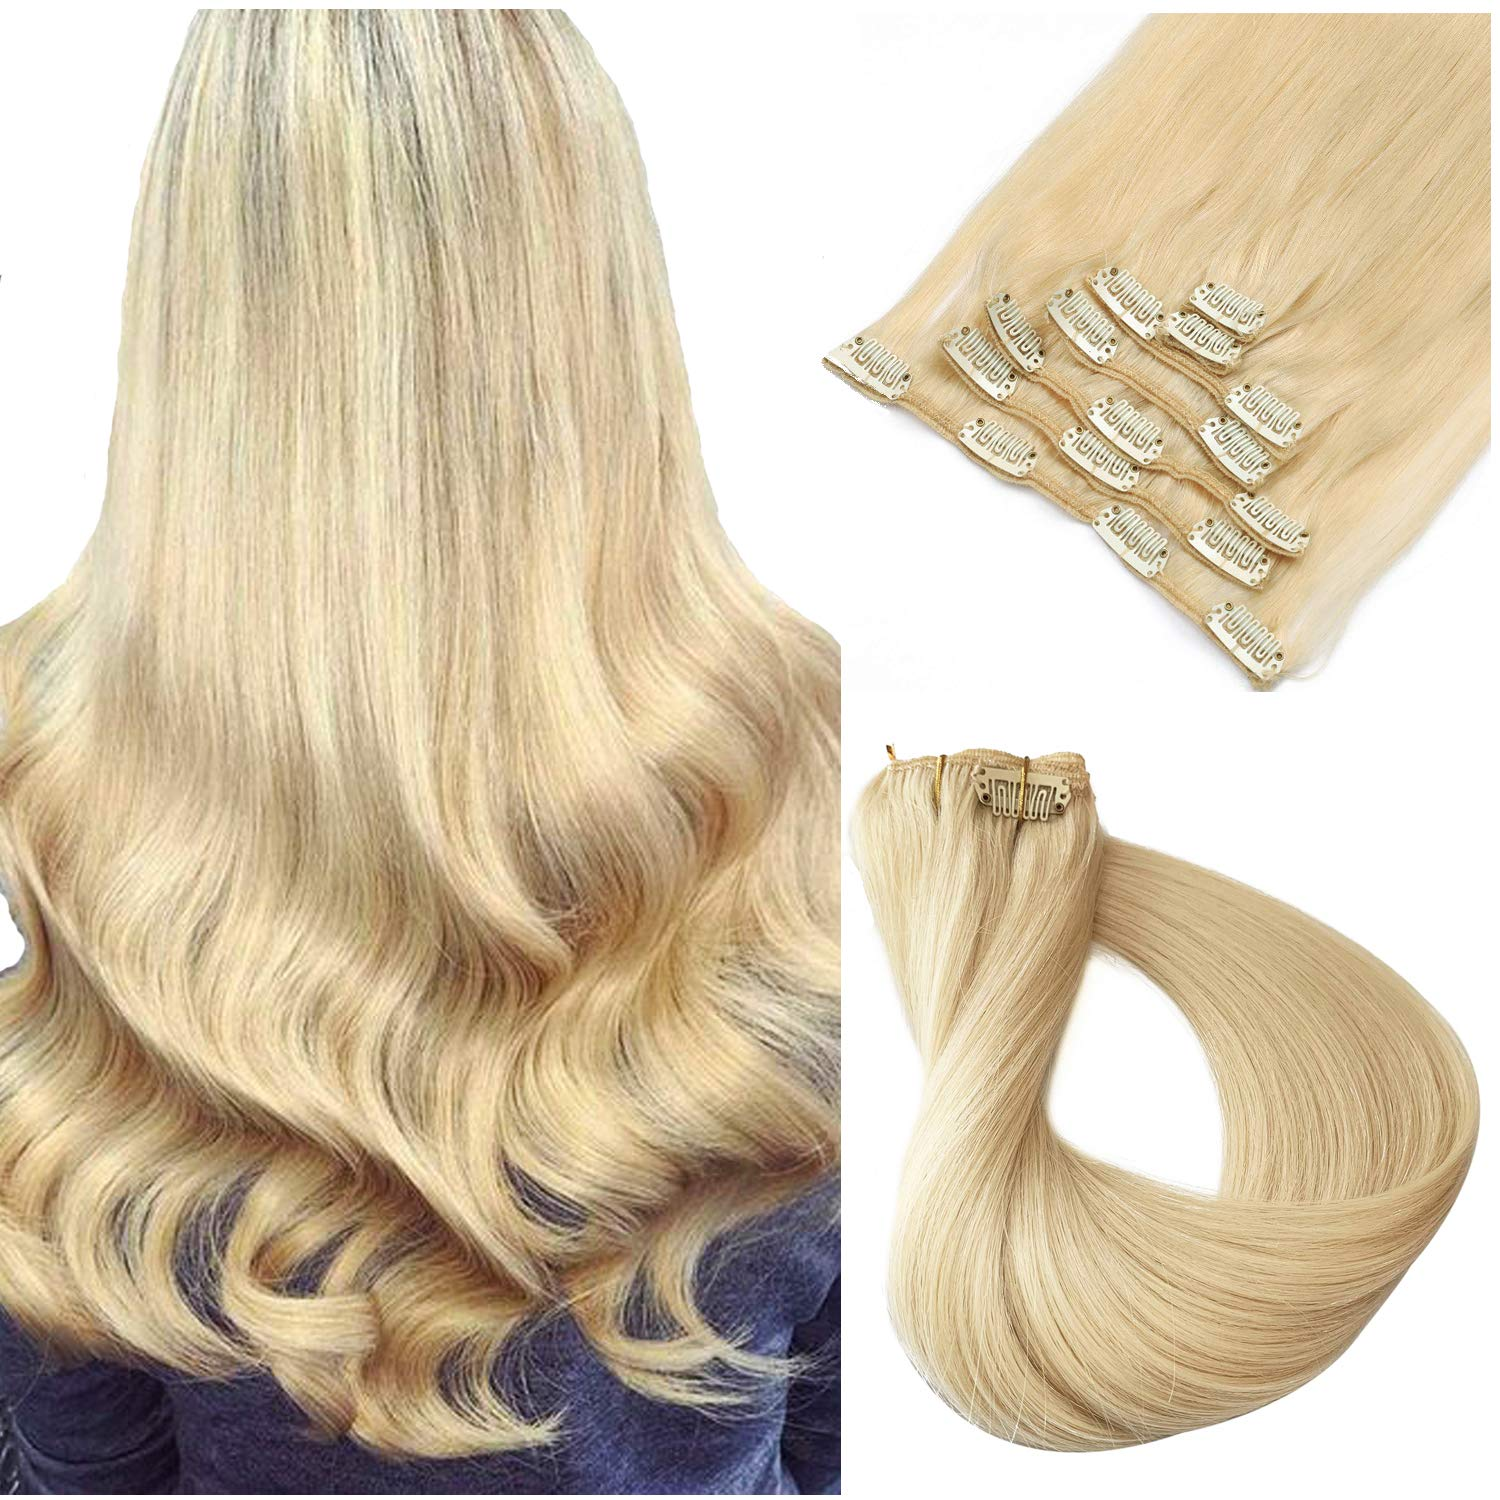 613 Blonde Hair Extensions Clip in Human Hair for Black Women Real Remy Hair Extensions Clip on 100% Brazilian Virgin Hair Extensions Double Weft Full Head Even End Silky Straight Glueless 20 Inch